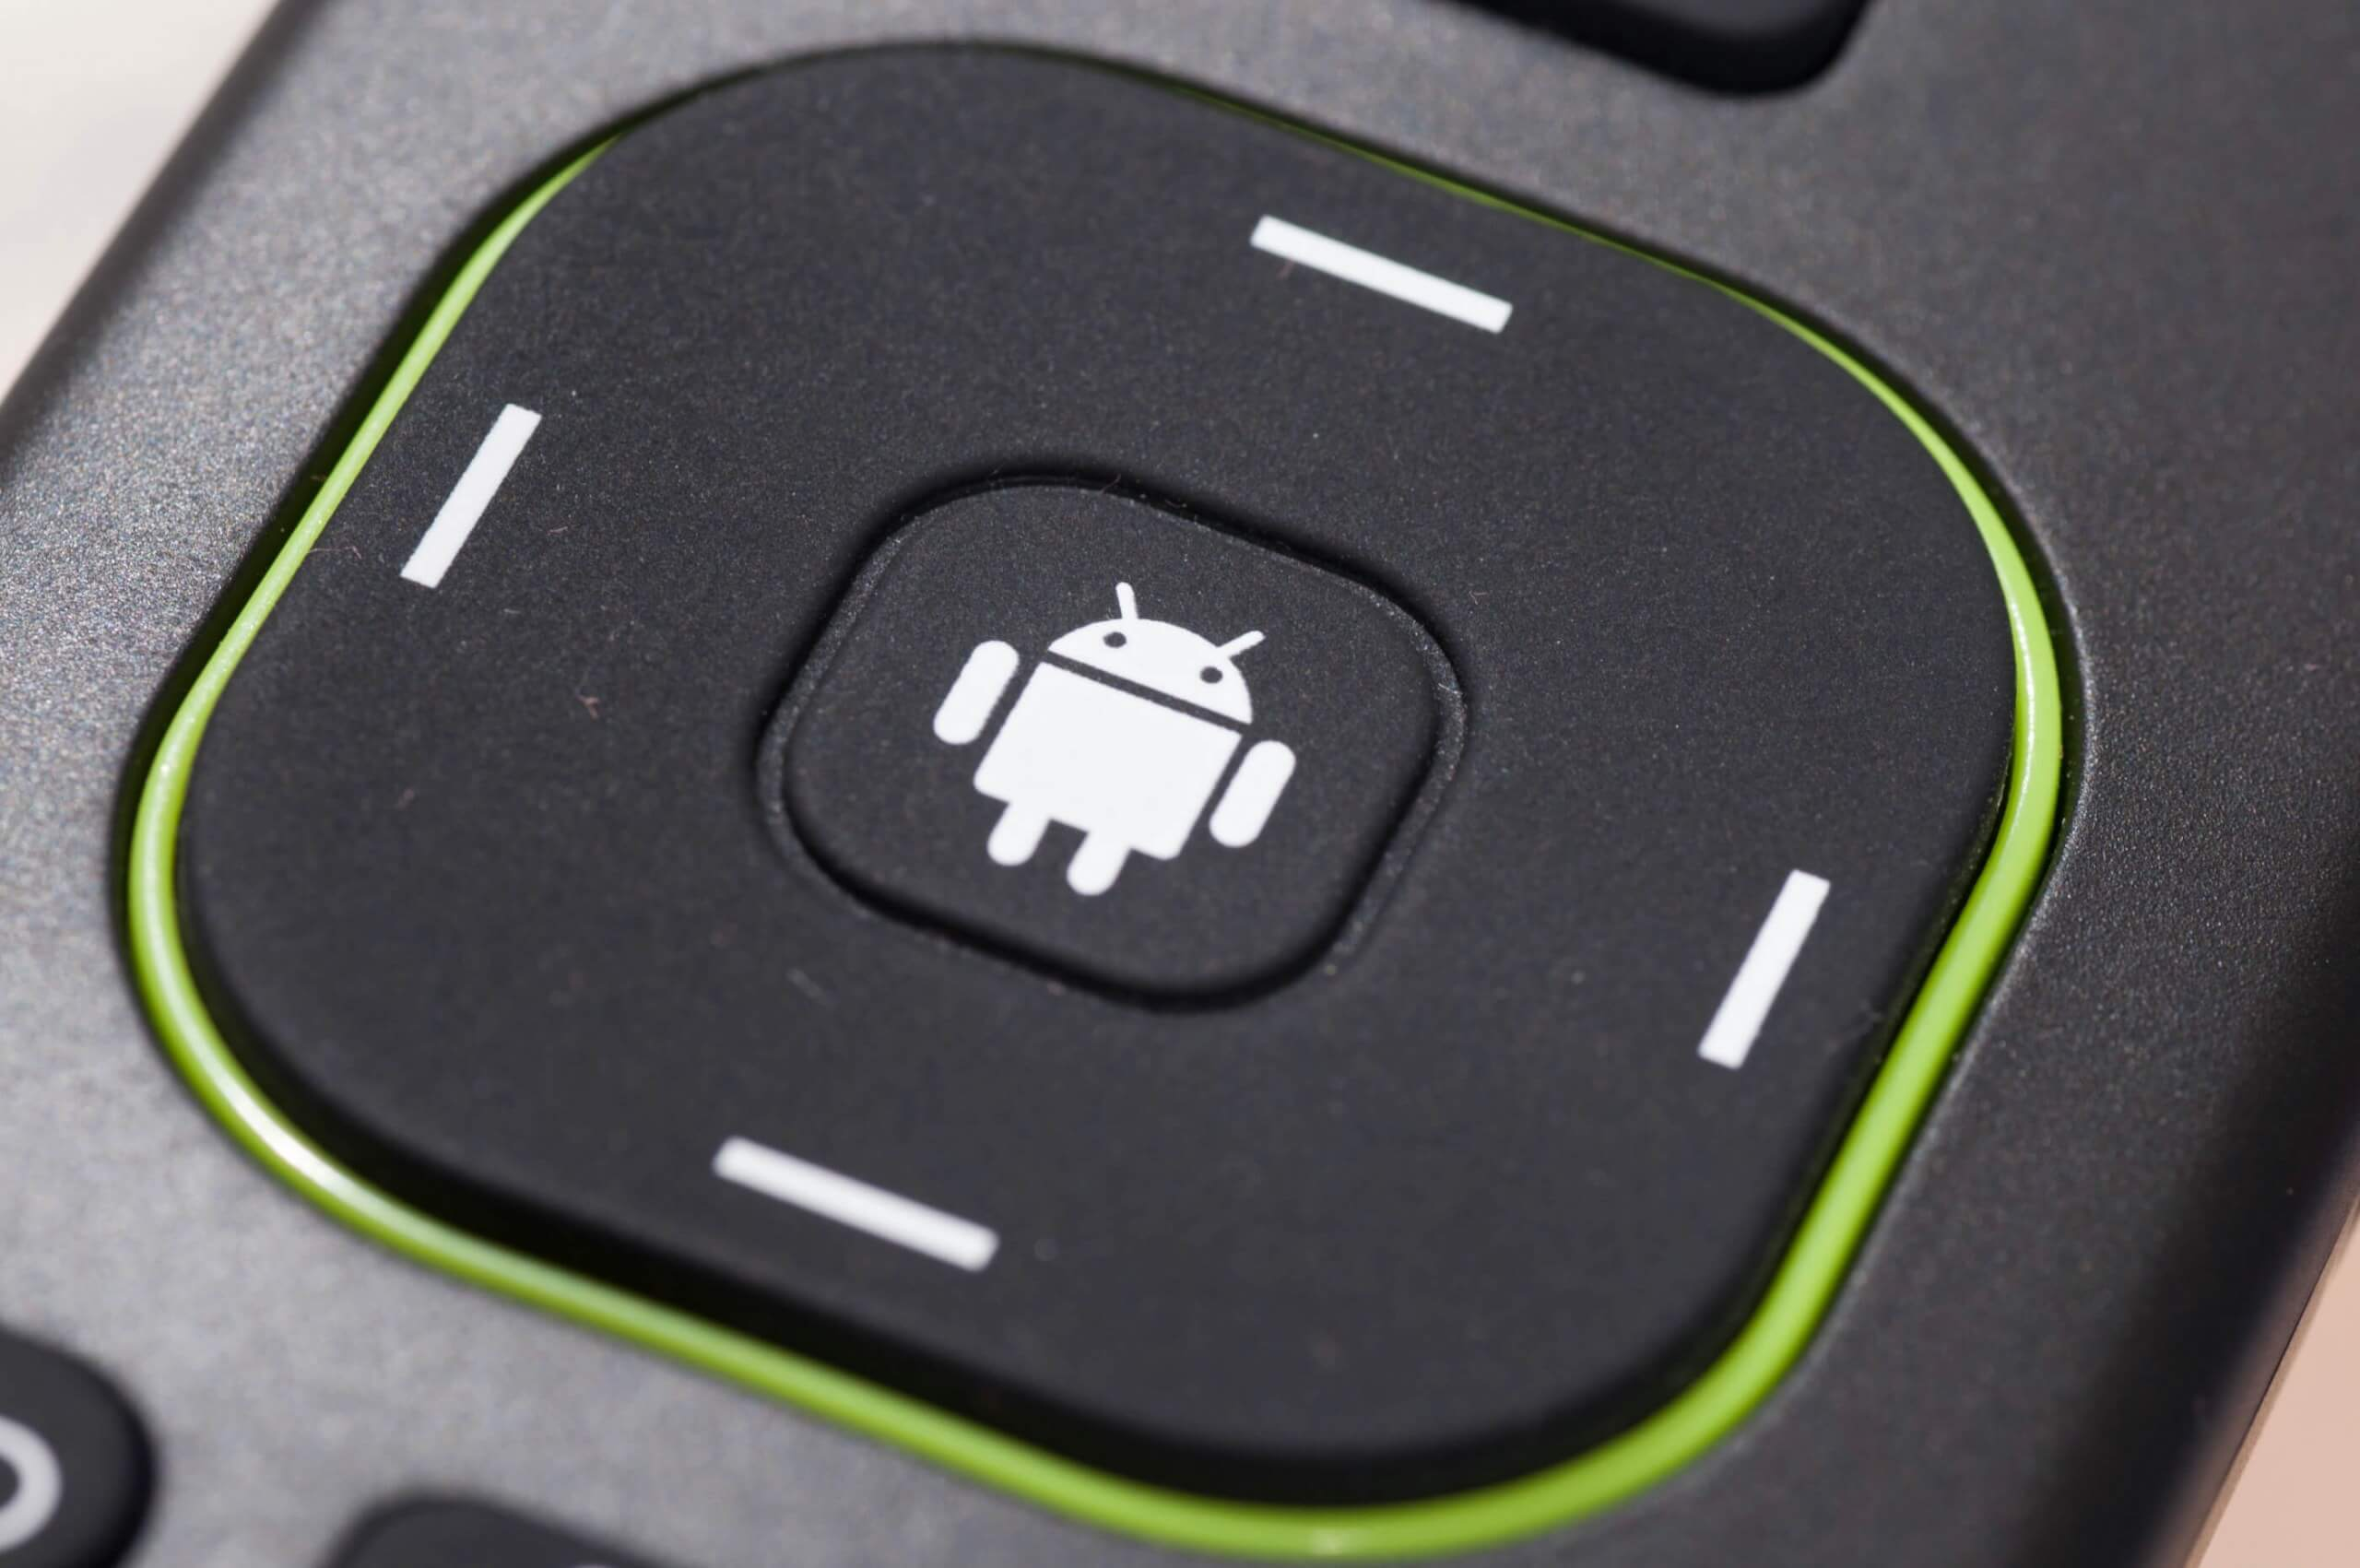 Google's Android license reportedly prevents TV makers from partnering with Amazon